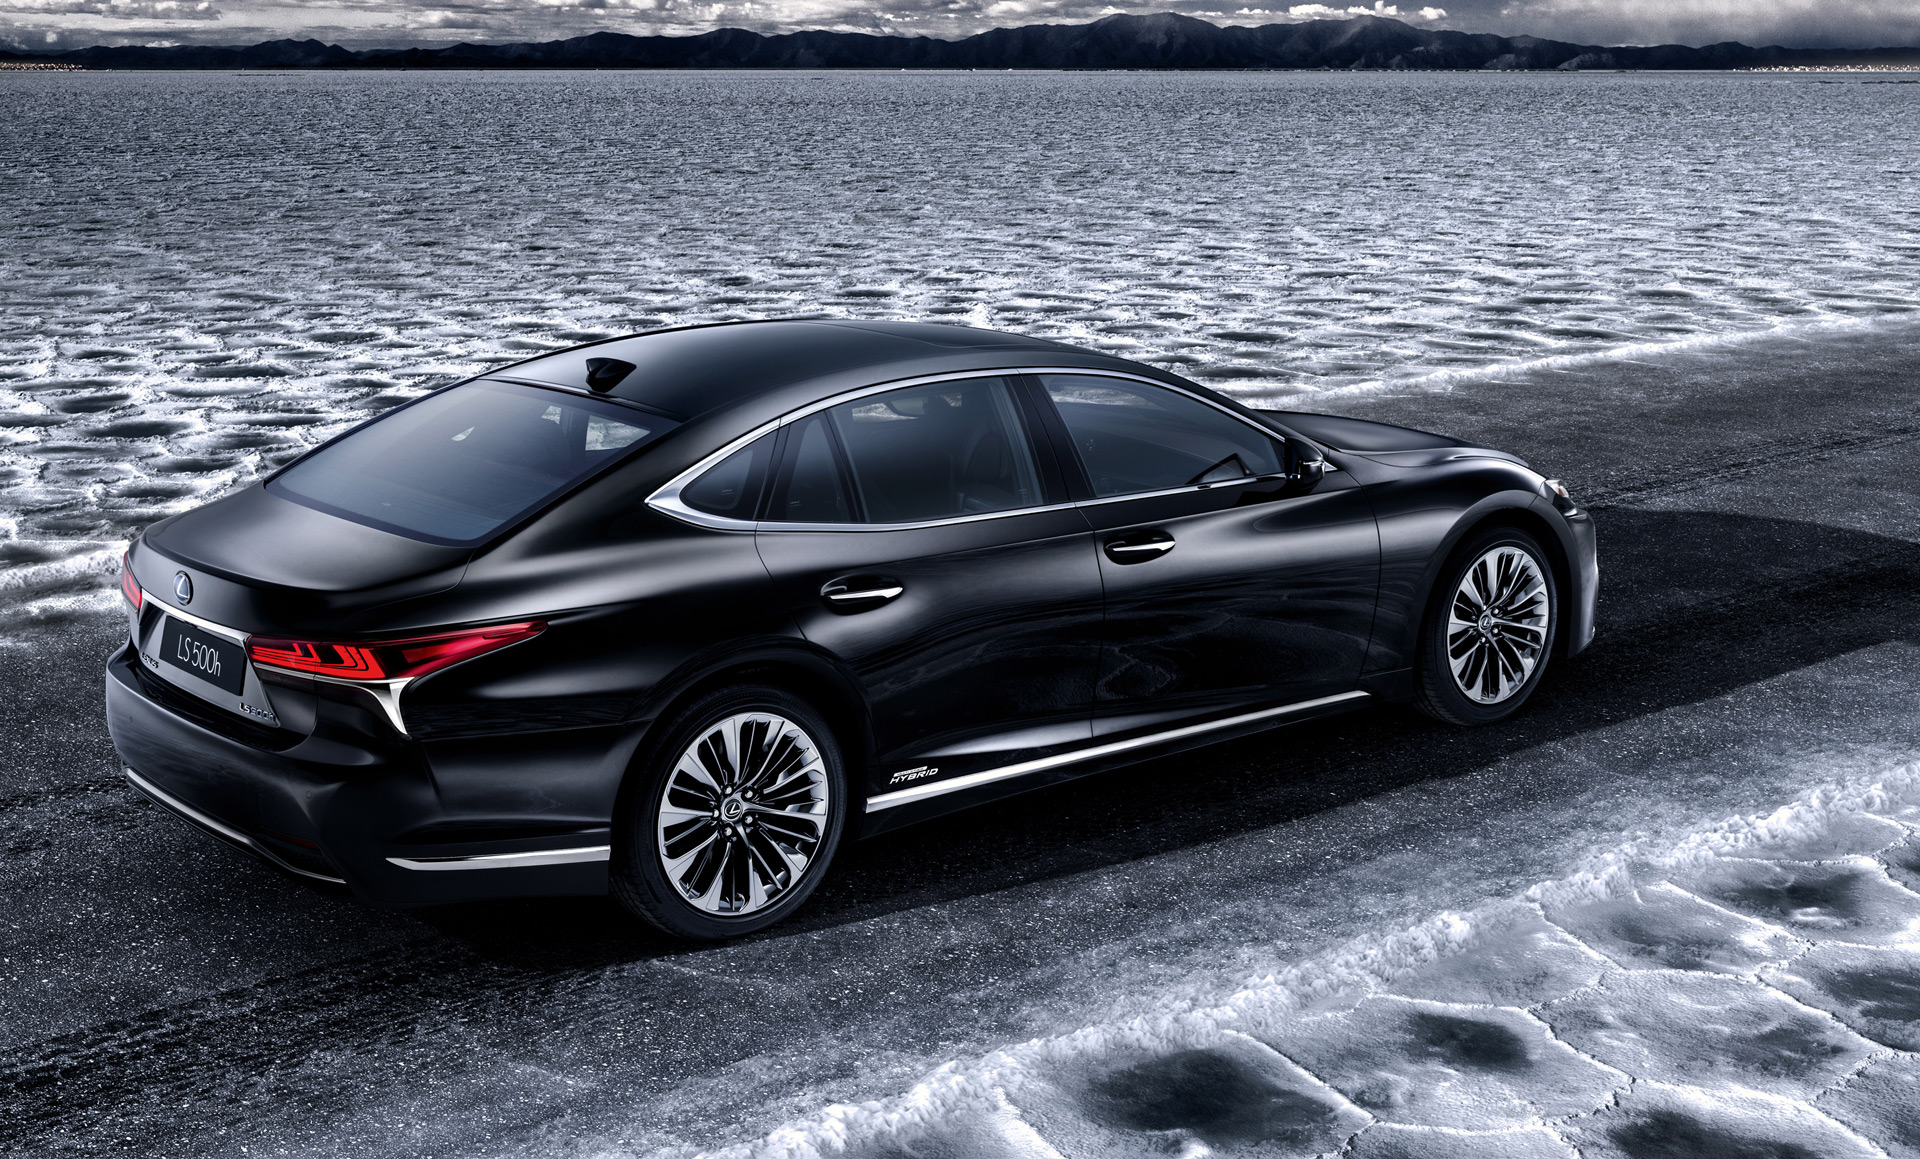 The Best Luxury Cars Of 2018: 2018 Lexus LS 500h Hybrid Luxury Sedan To Debut At Geneva Show